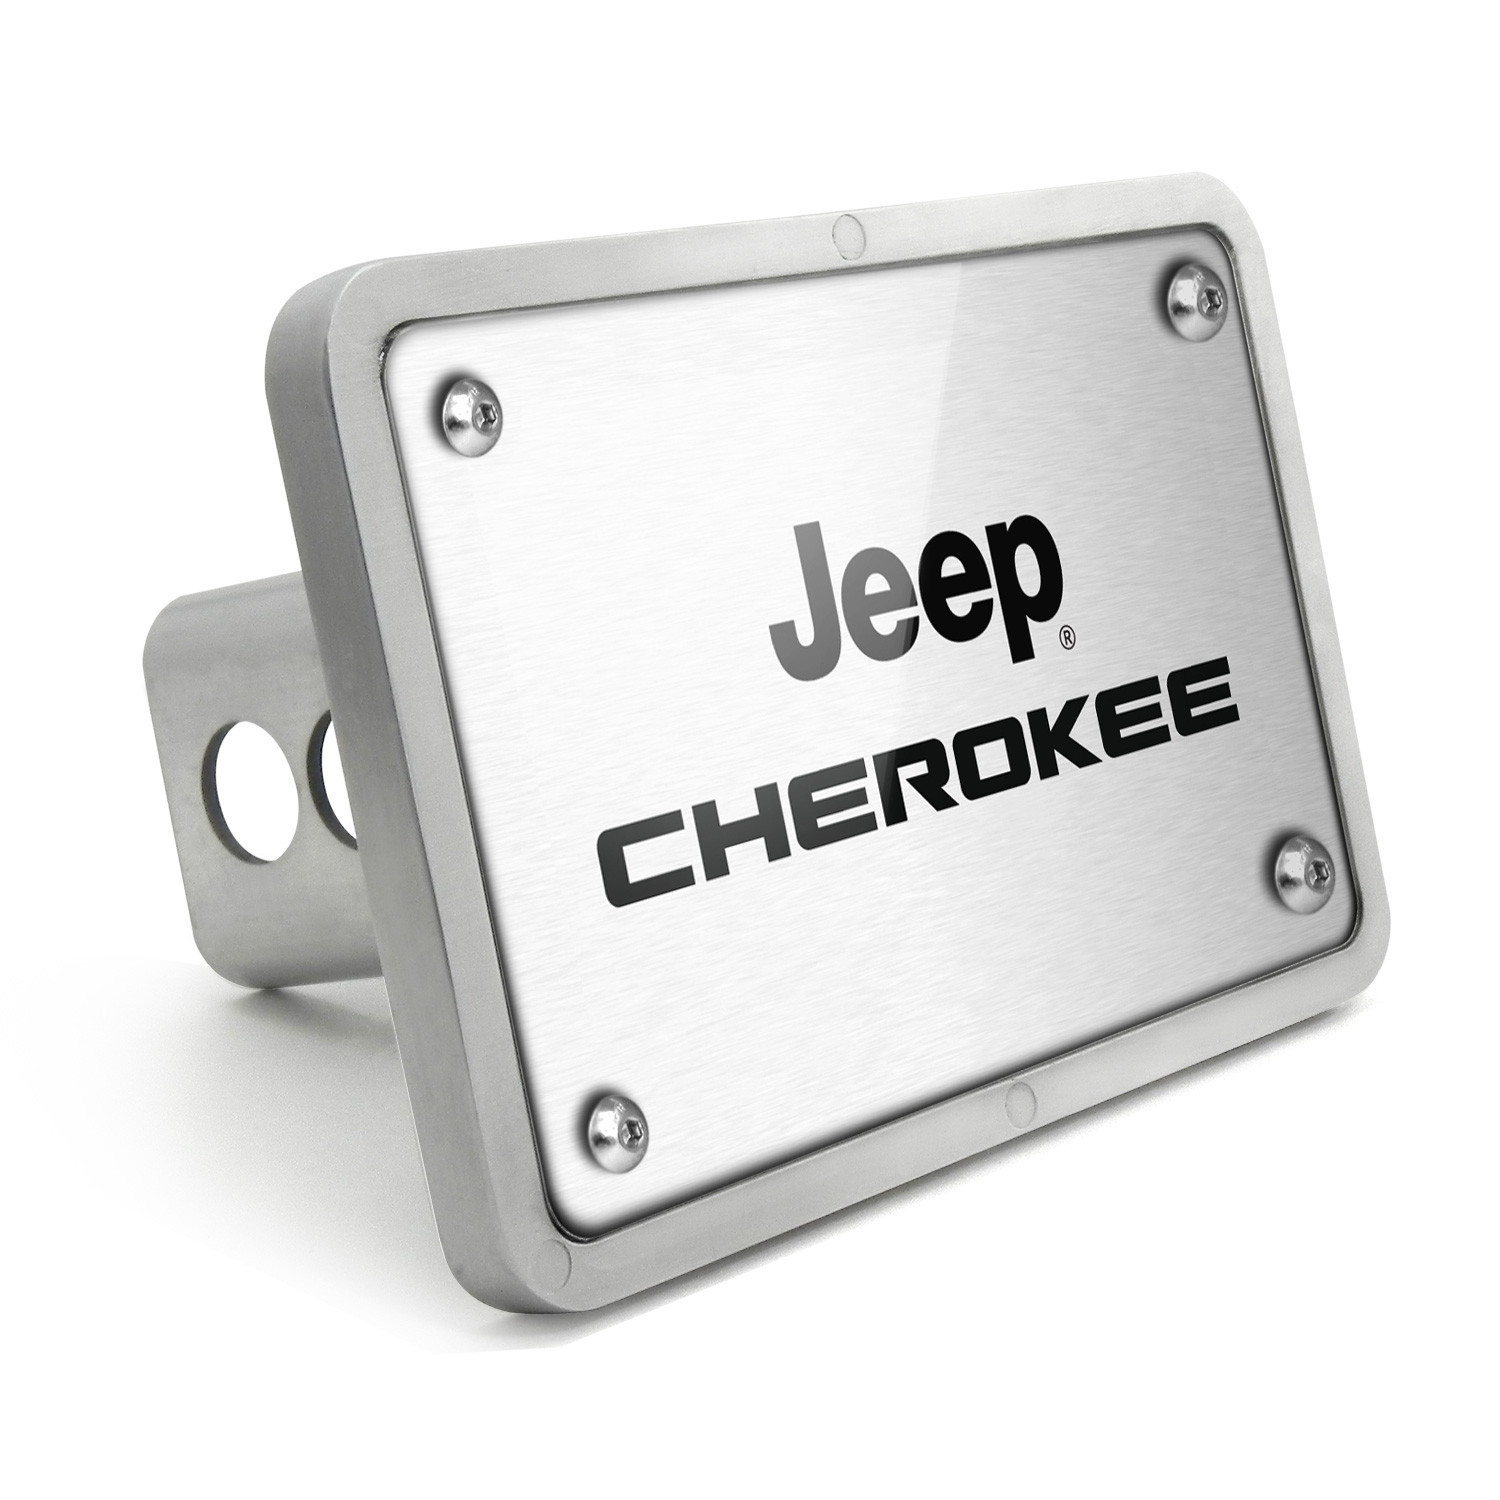 Jeep Cherokee UV Graphic Brushed Silver Billet Aluminum 2 inch Tow Hitch Cover